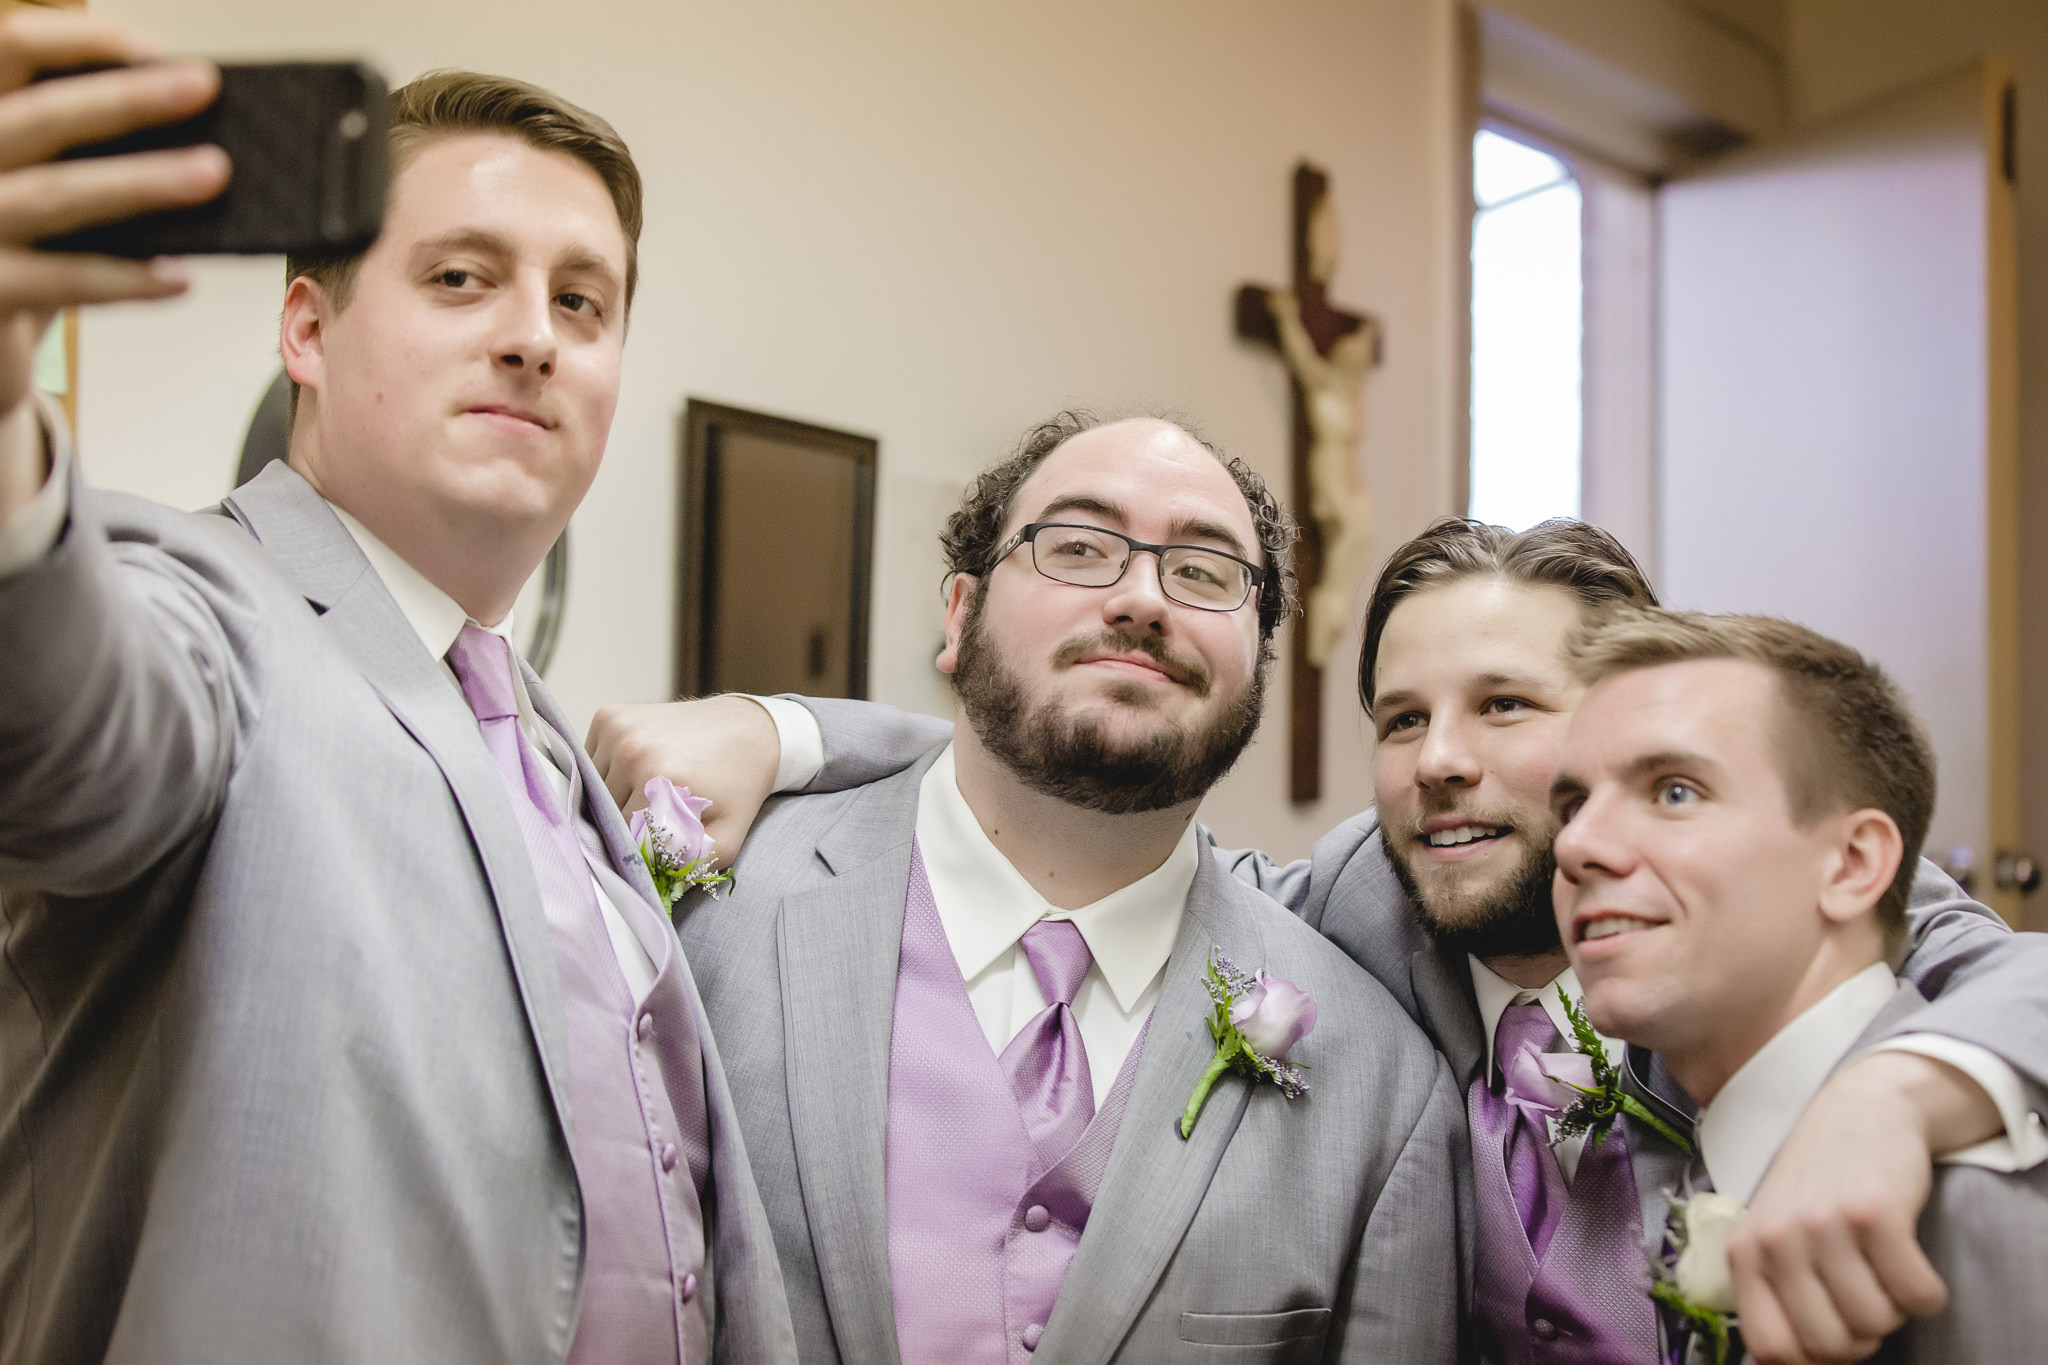 Groomsmen take a selfie at St. Malachy before wedding ceremony